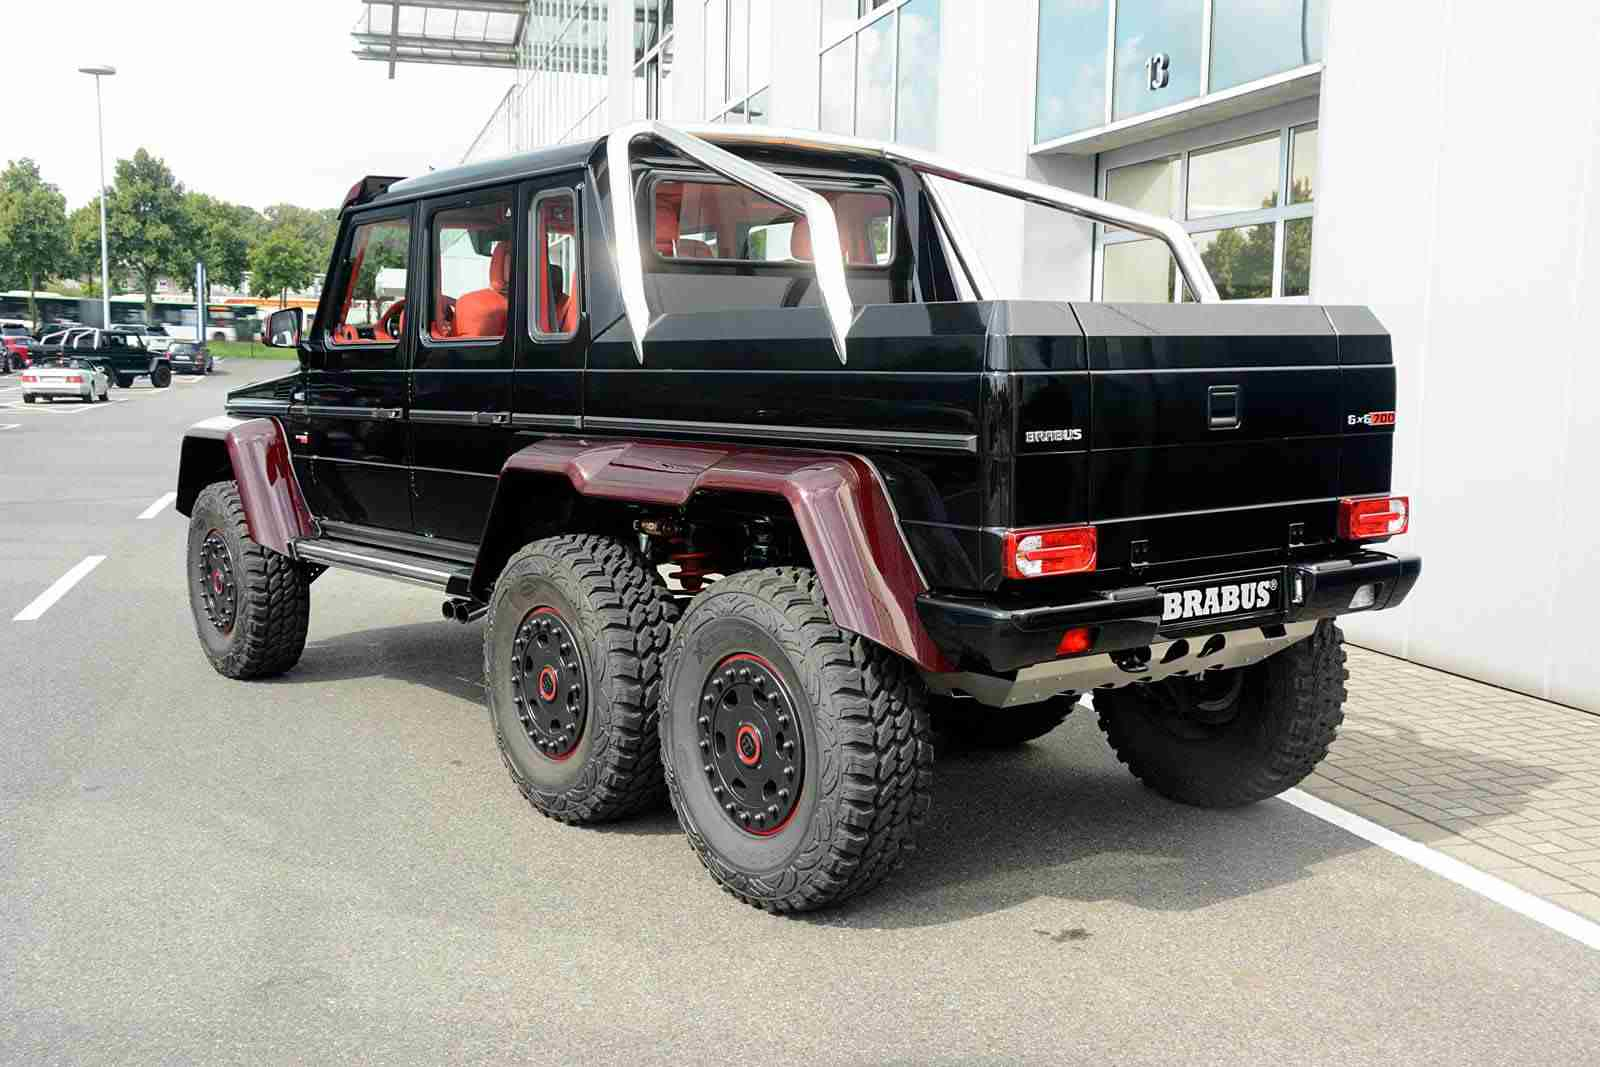 Mercedes G63 Amg 6x6 Gets Red Carbon Treatment From Brabus